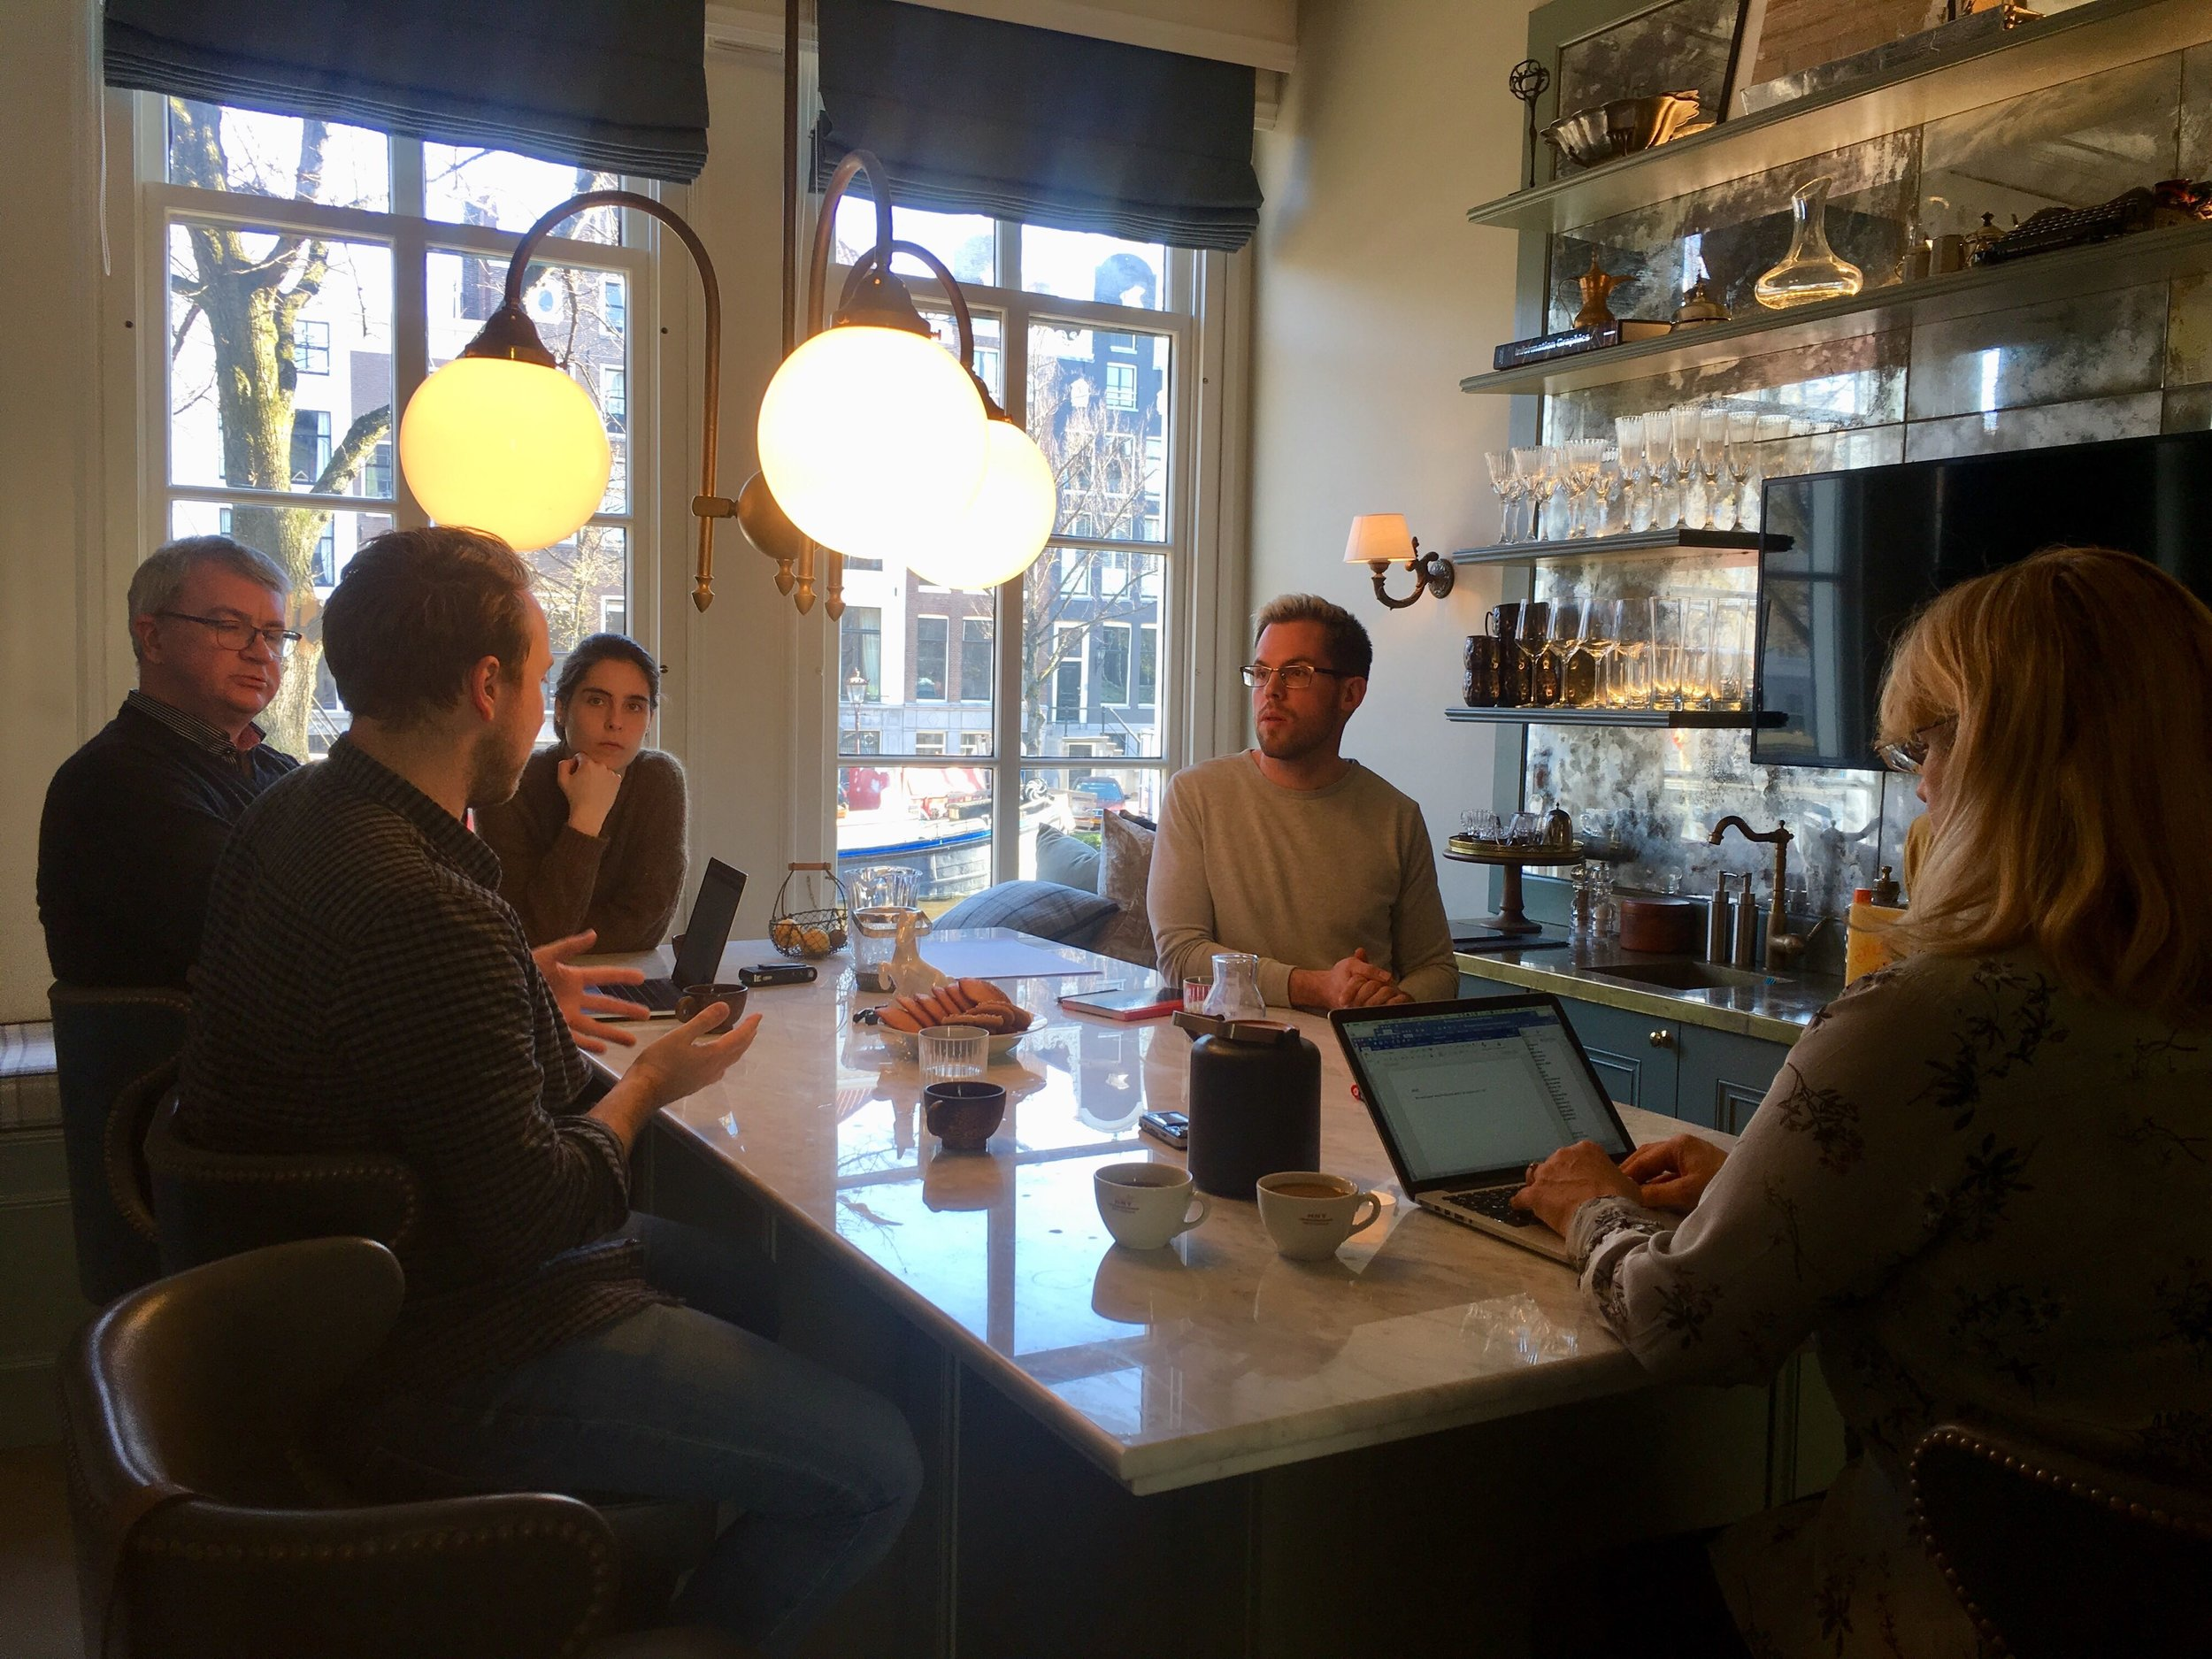 Brainstorming meeting on a possible collaboration with a platform for sharing of physical goods in the Netherlands.